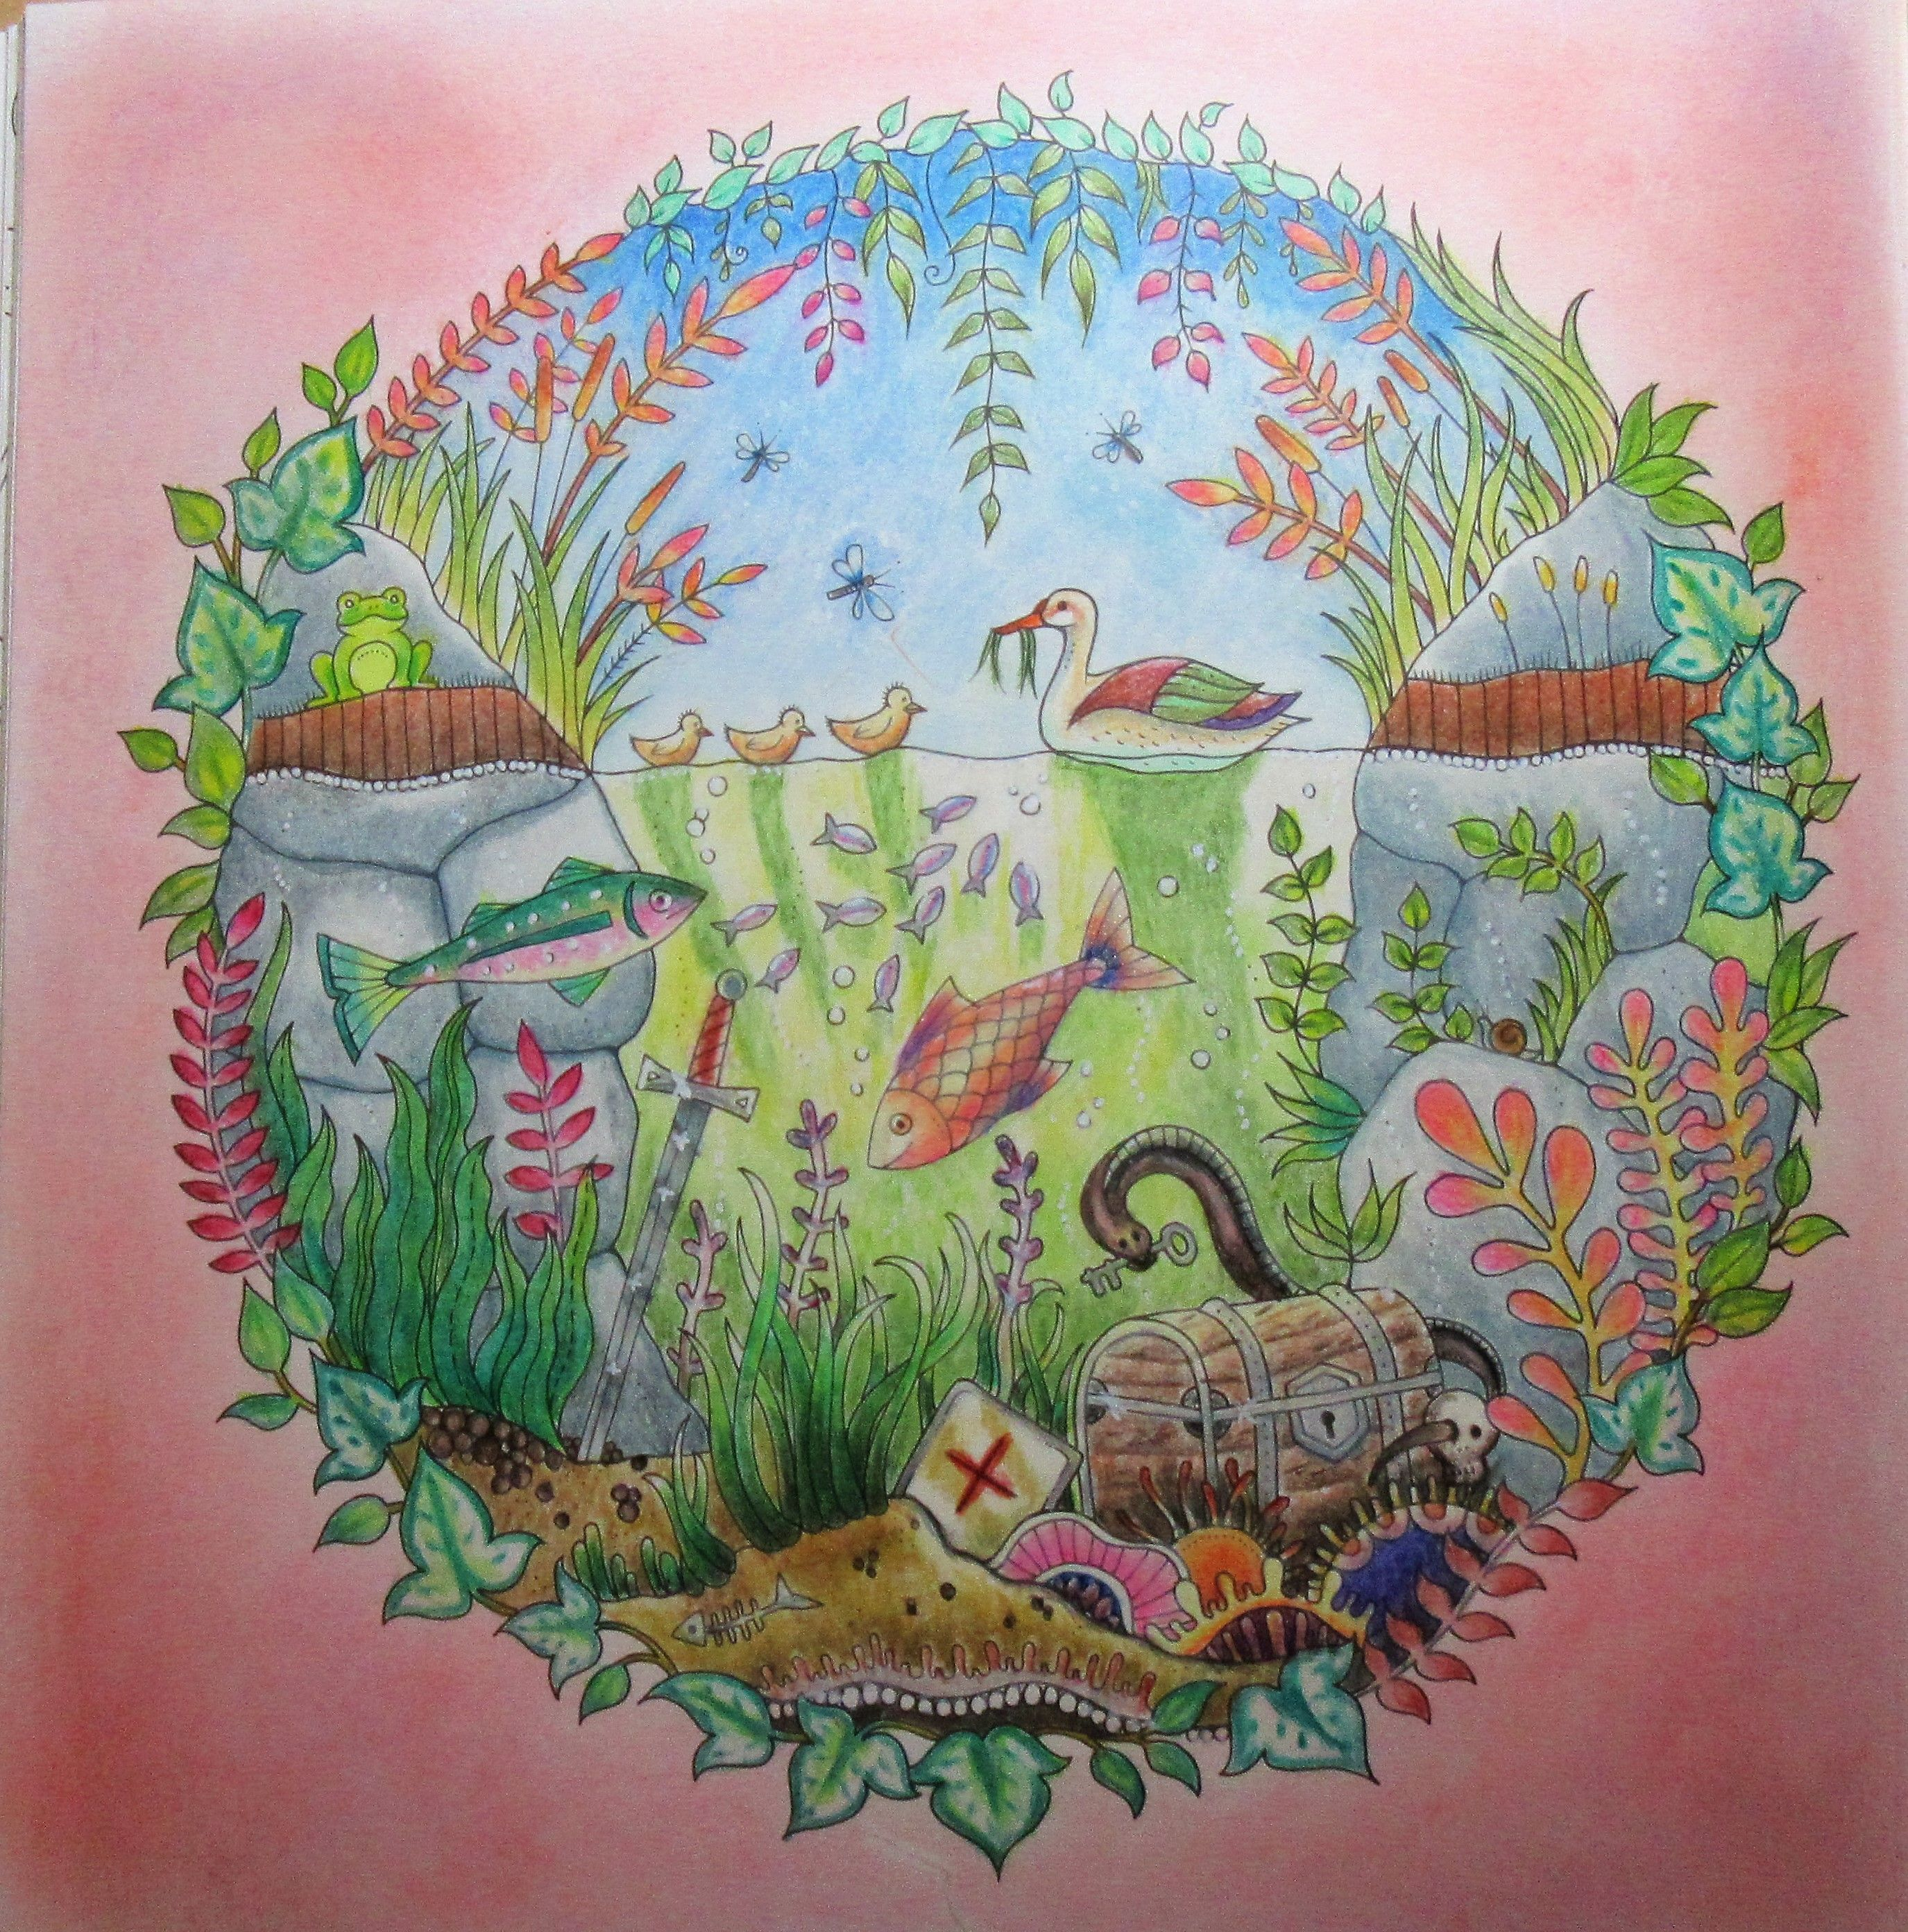 Johanna Basford Enchanted Forest Coloring Book I Colored Along With PETA Hewitt Of La Artistino